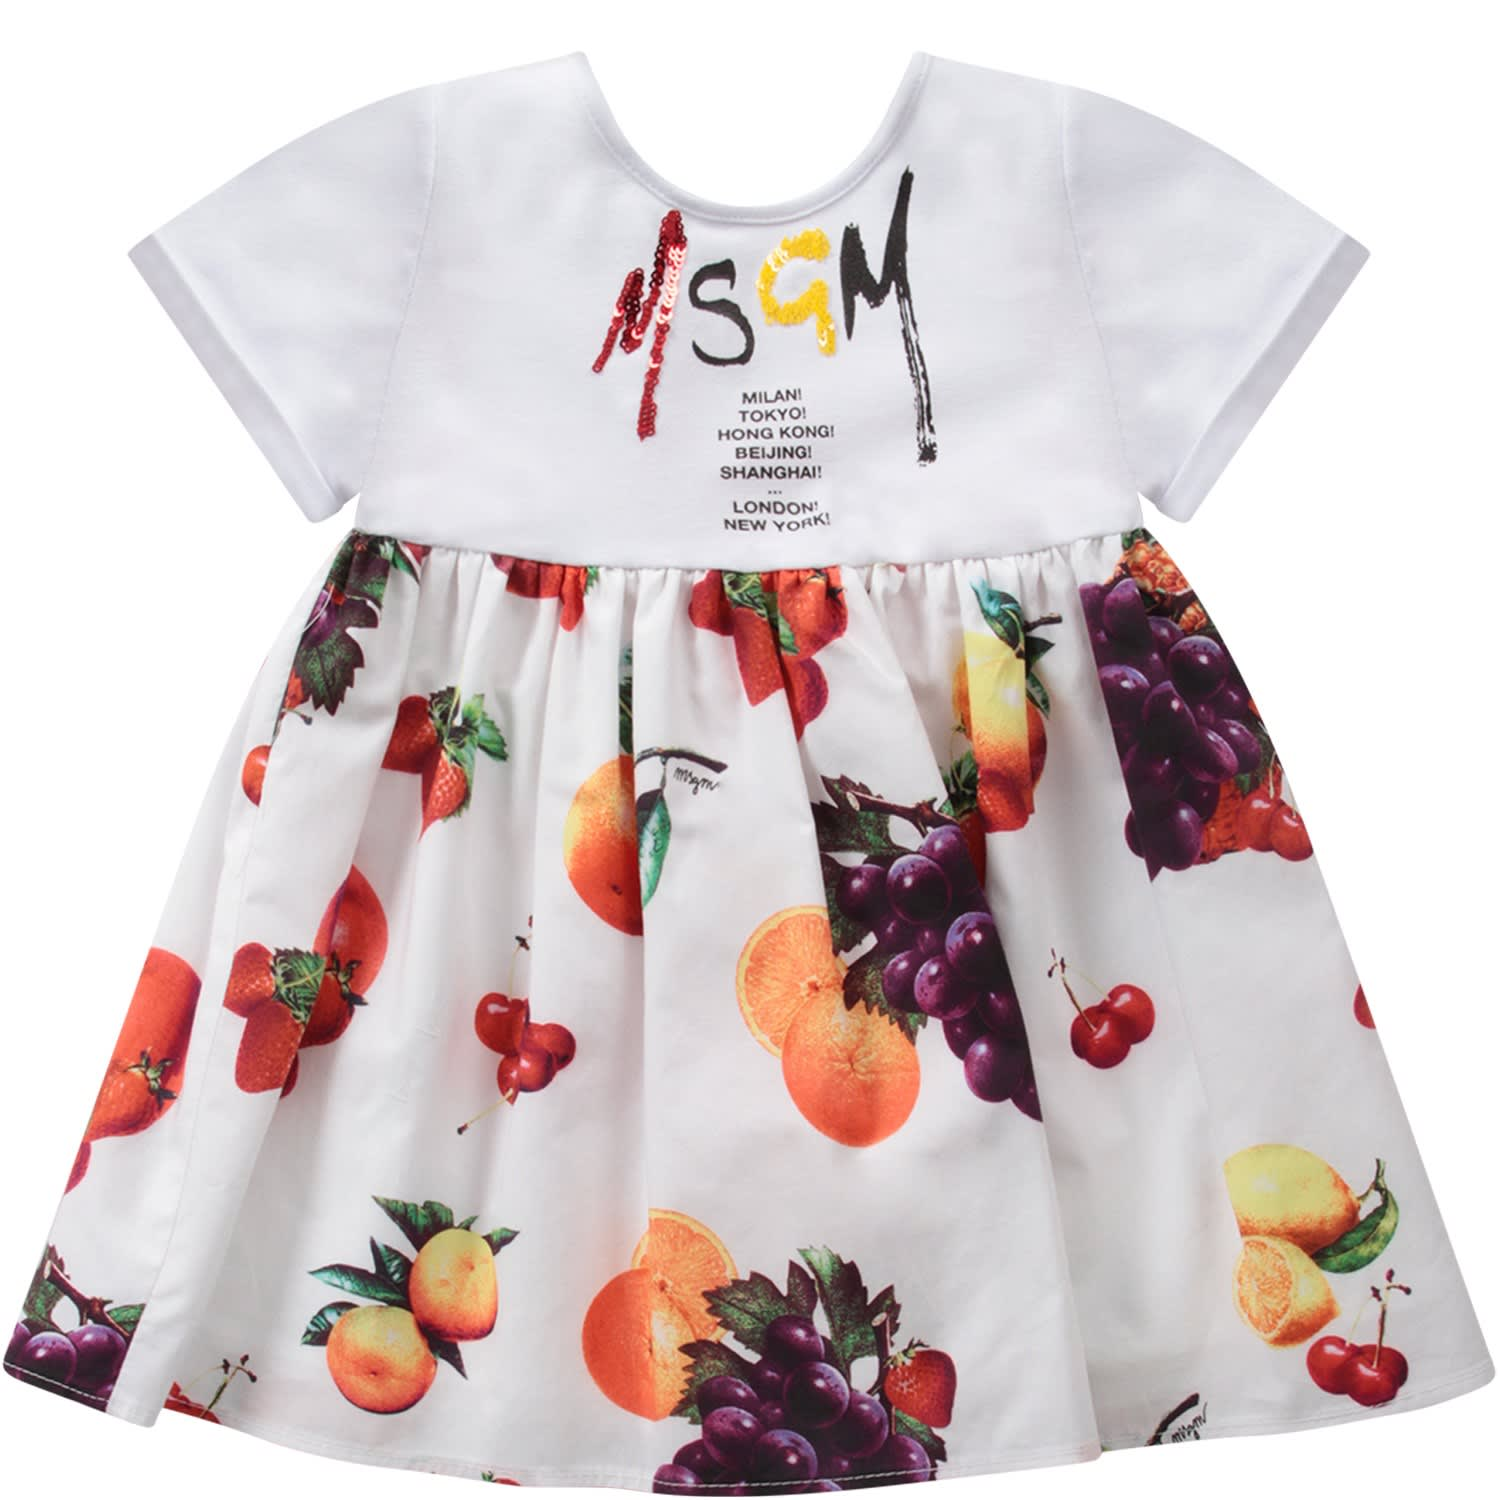 Buy MSGM White Dress With Logo For Baby Girl online, shop MSGM with free shipping